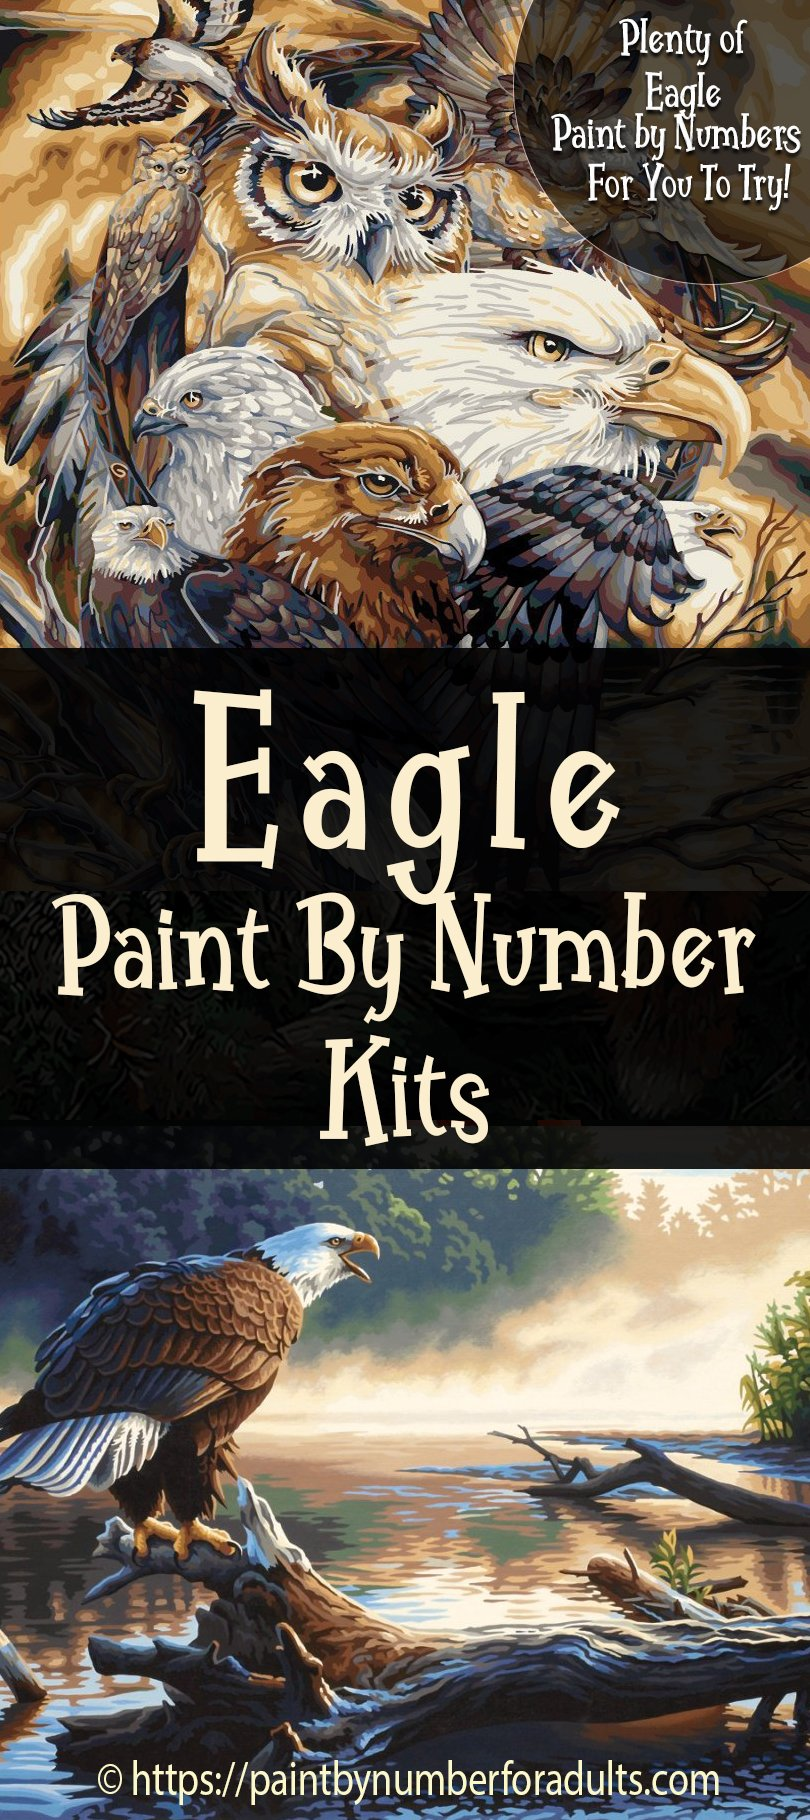 Eagle Paint By Number Kits